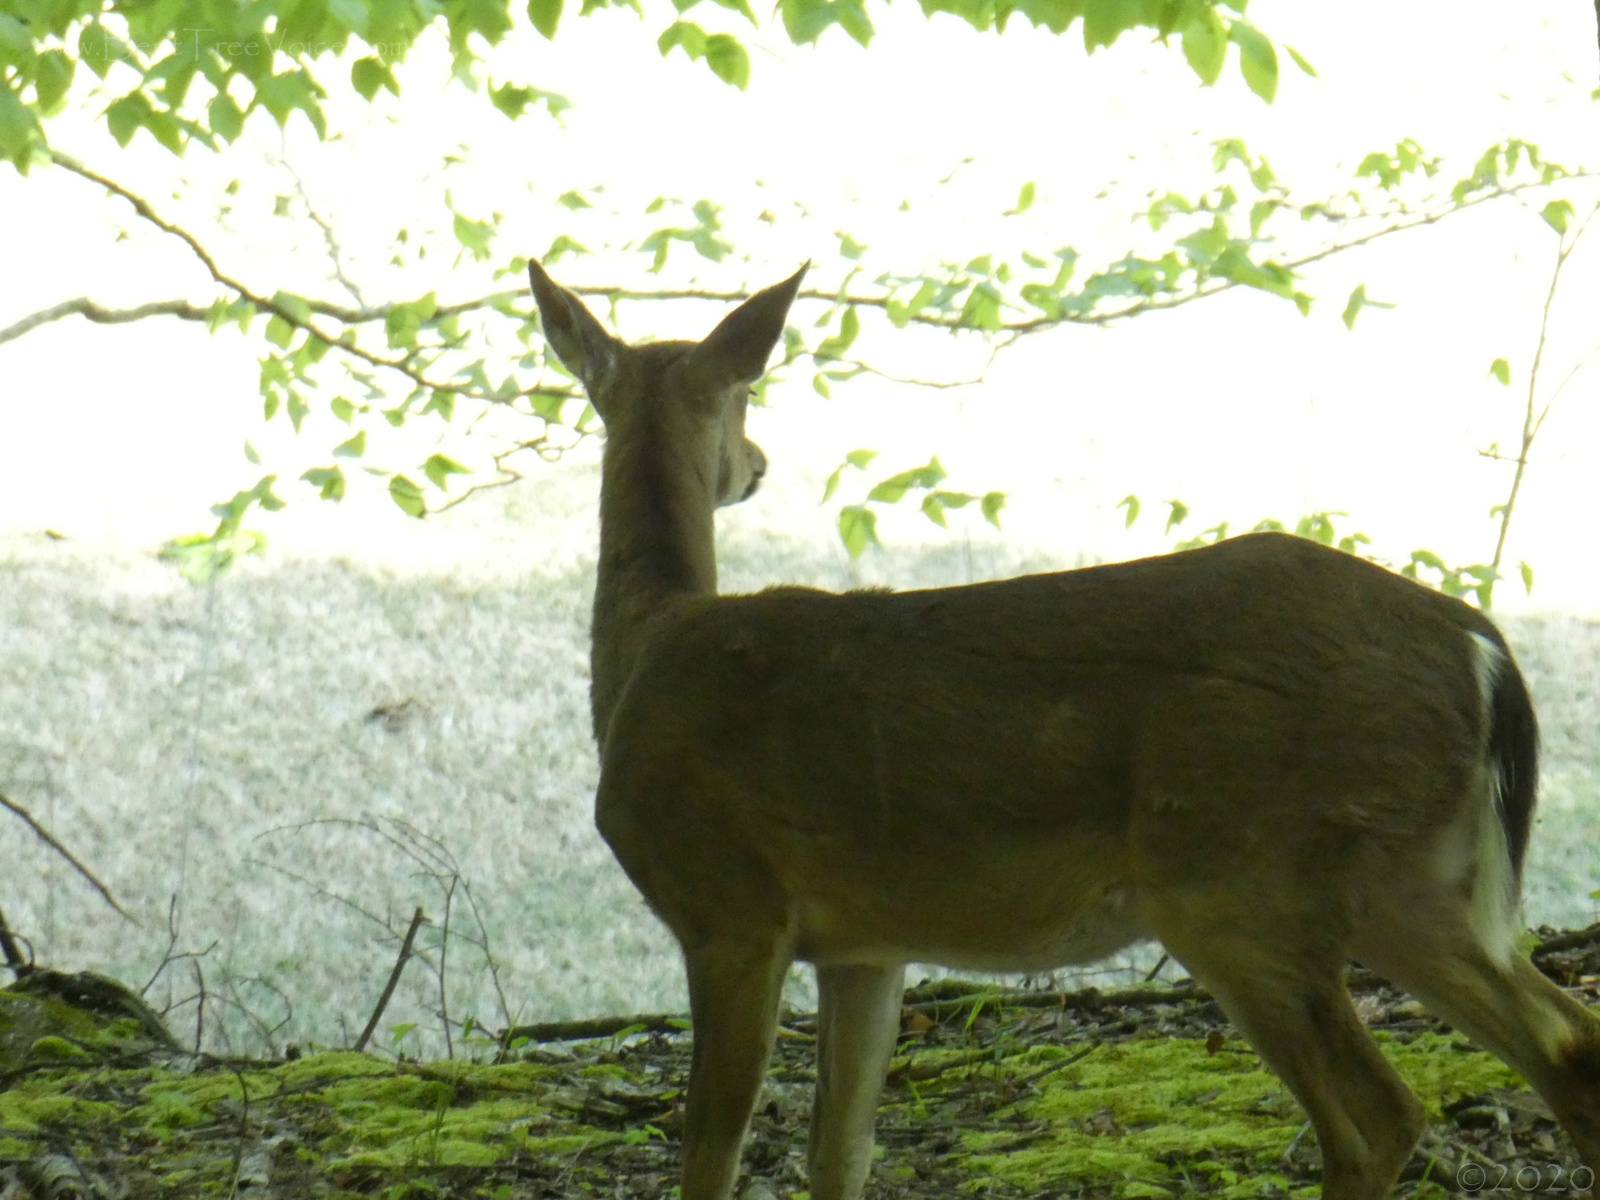 April 21, 2020 - Deer in the morning light in Bent Tree